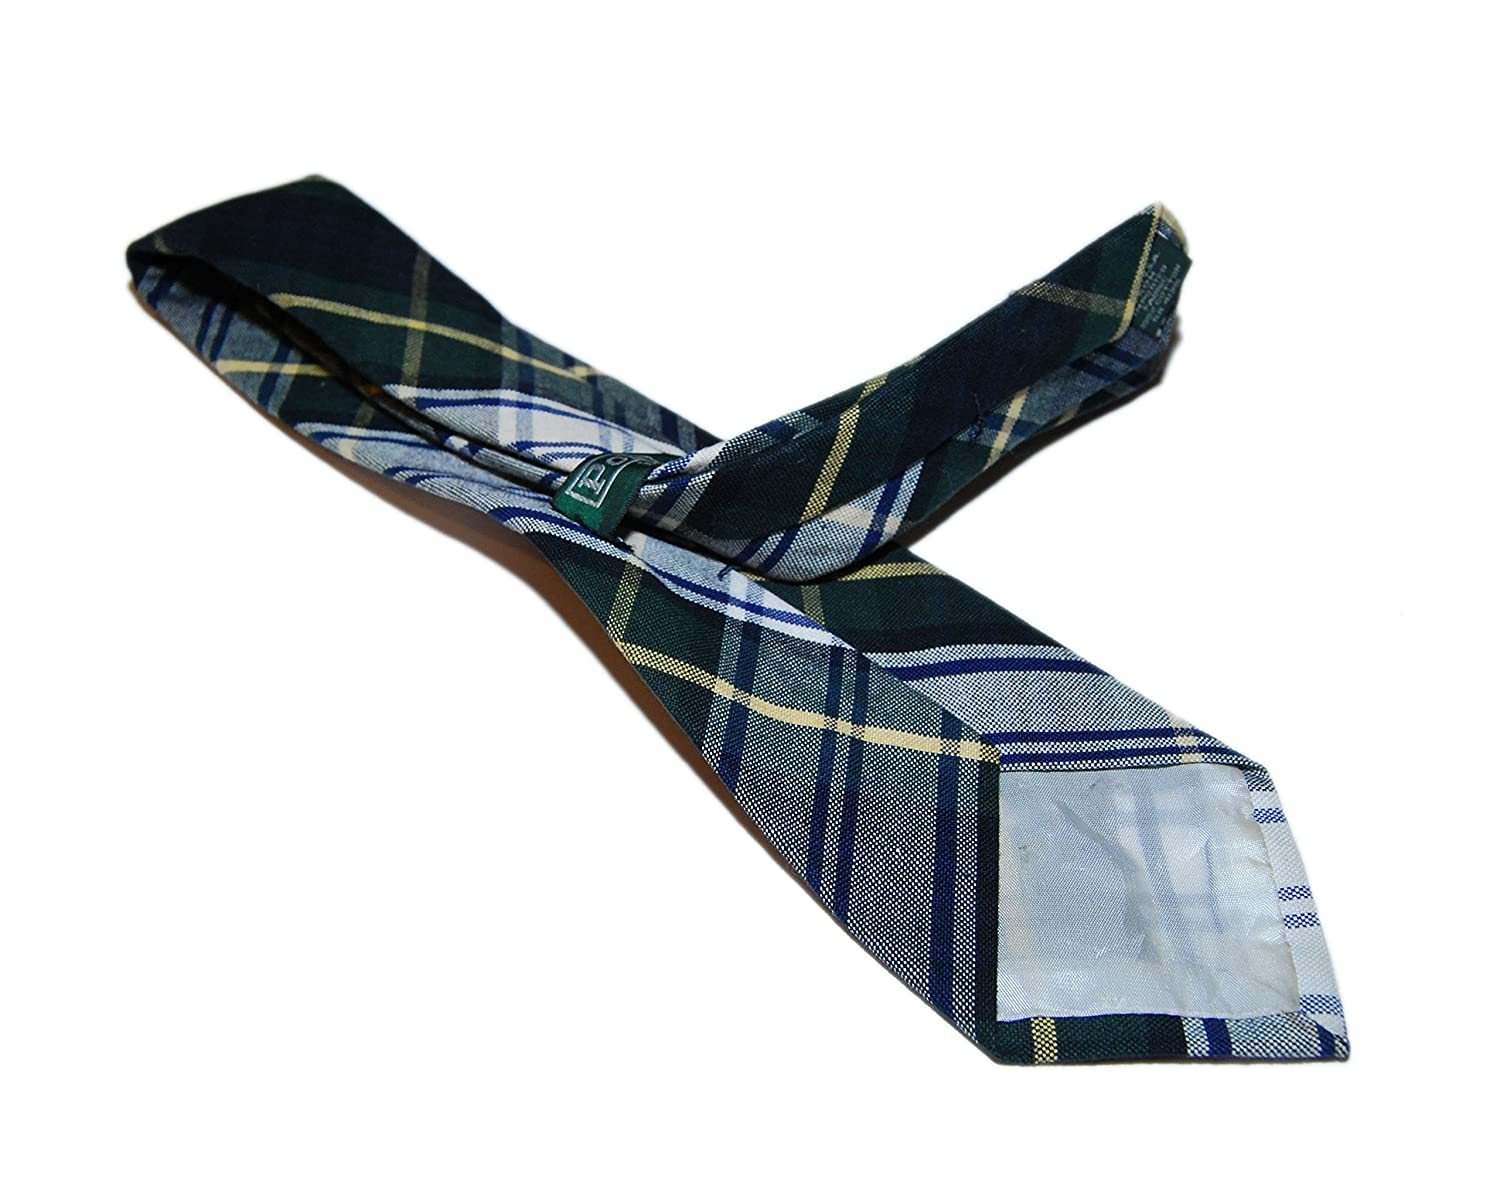 Polo Ralph Lauren Mens Cotton USA Casual Tie Hand Made Plaid Green Navy Yellow